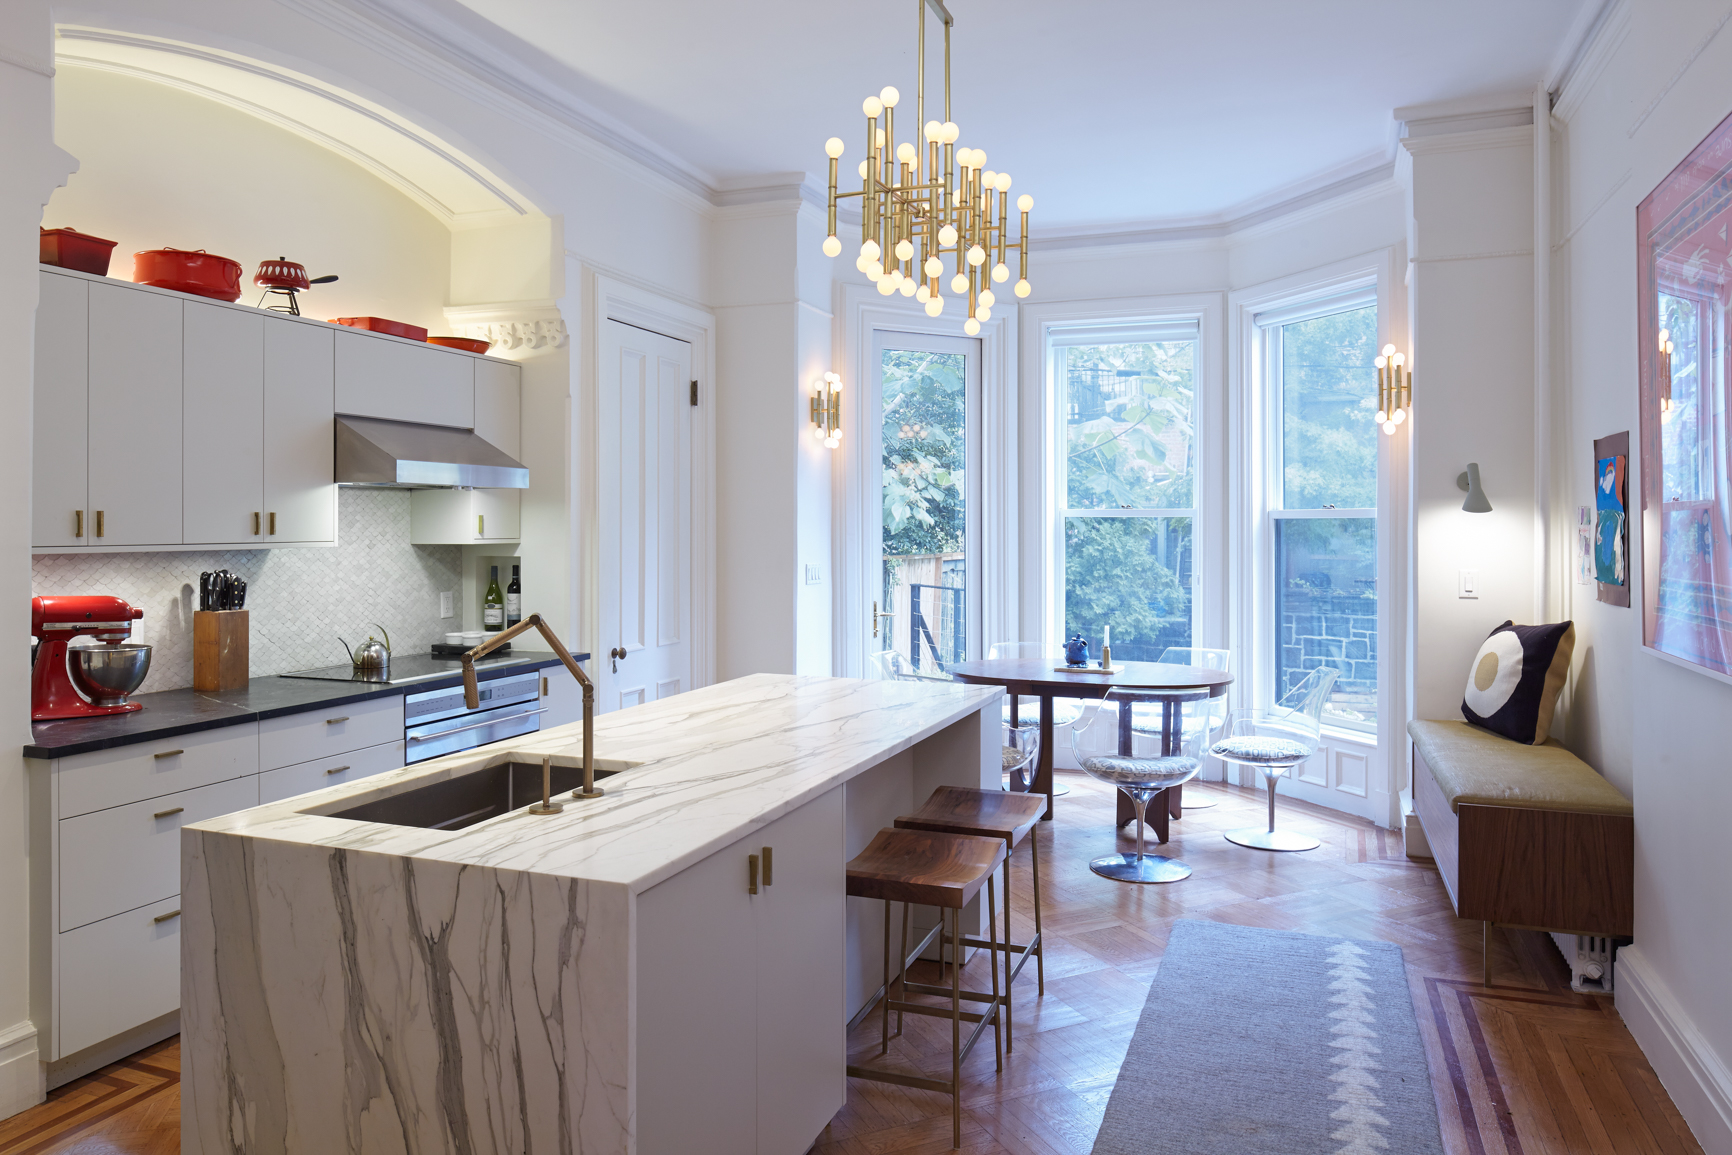 5 great alternatives to marble and granite for your NYC kitchen